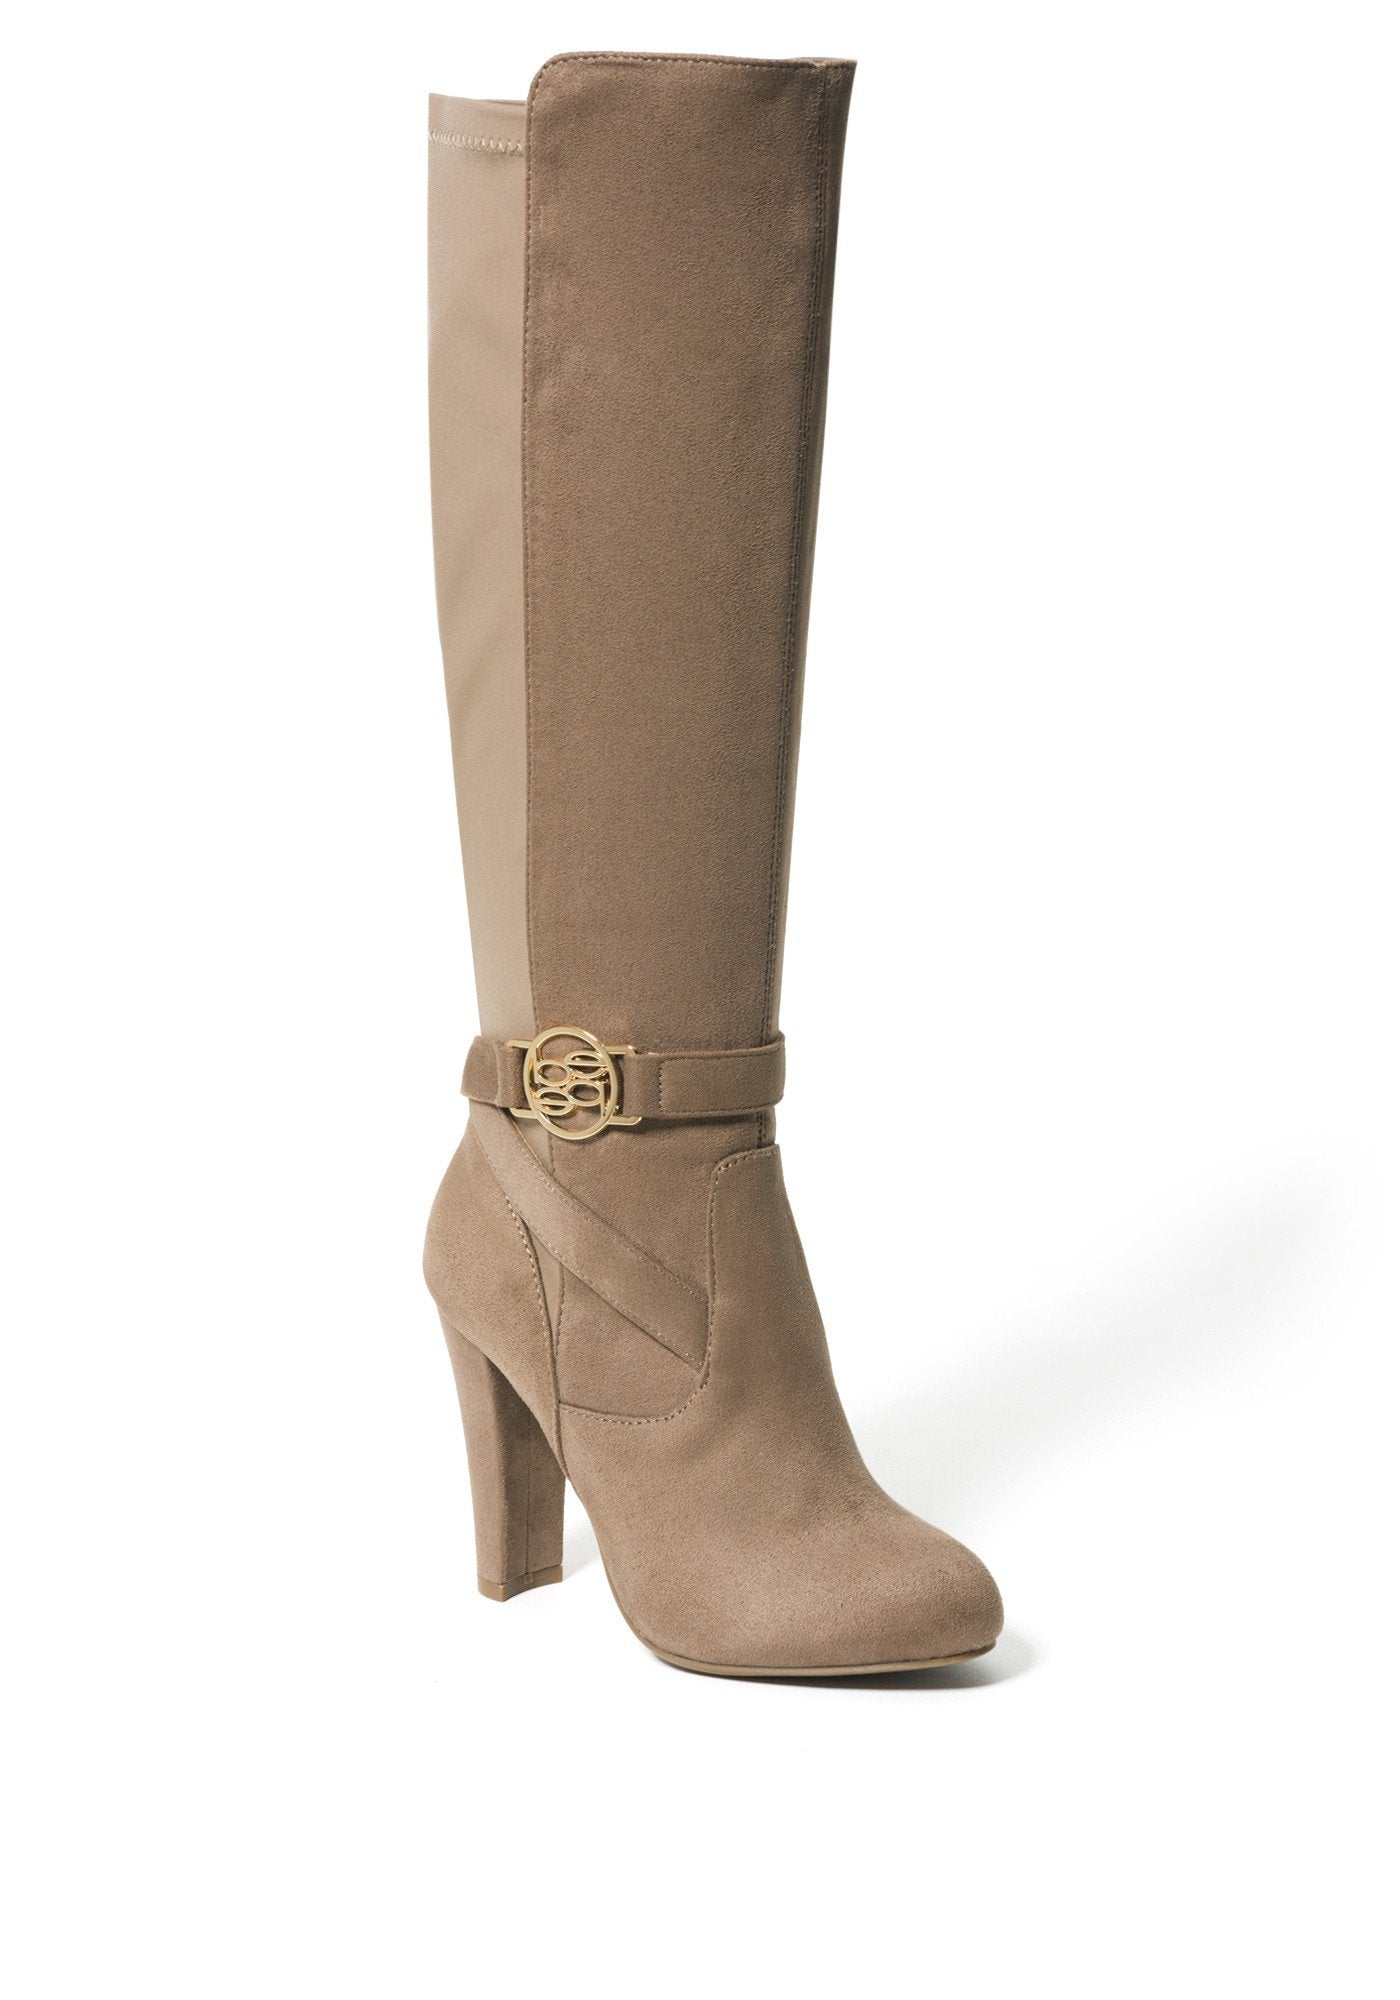 Bebe Women's Barya Logo Boots, Size 6 in Taupe Suede